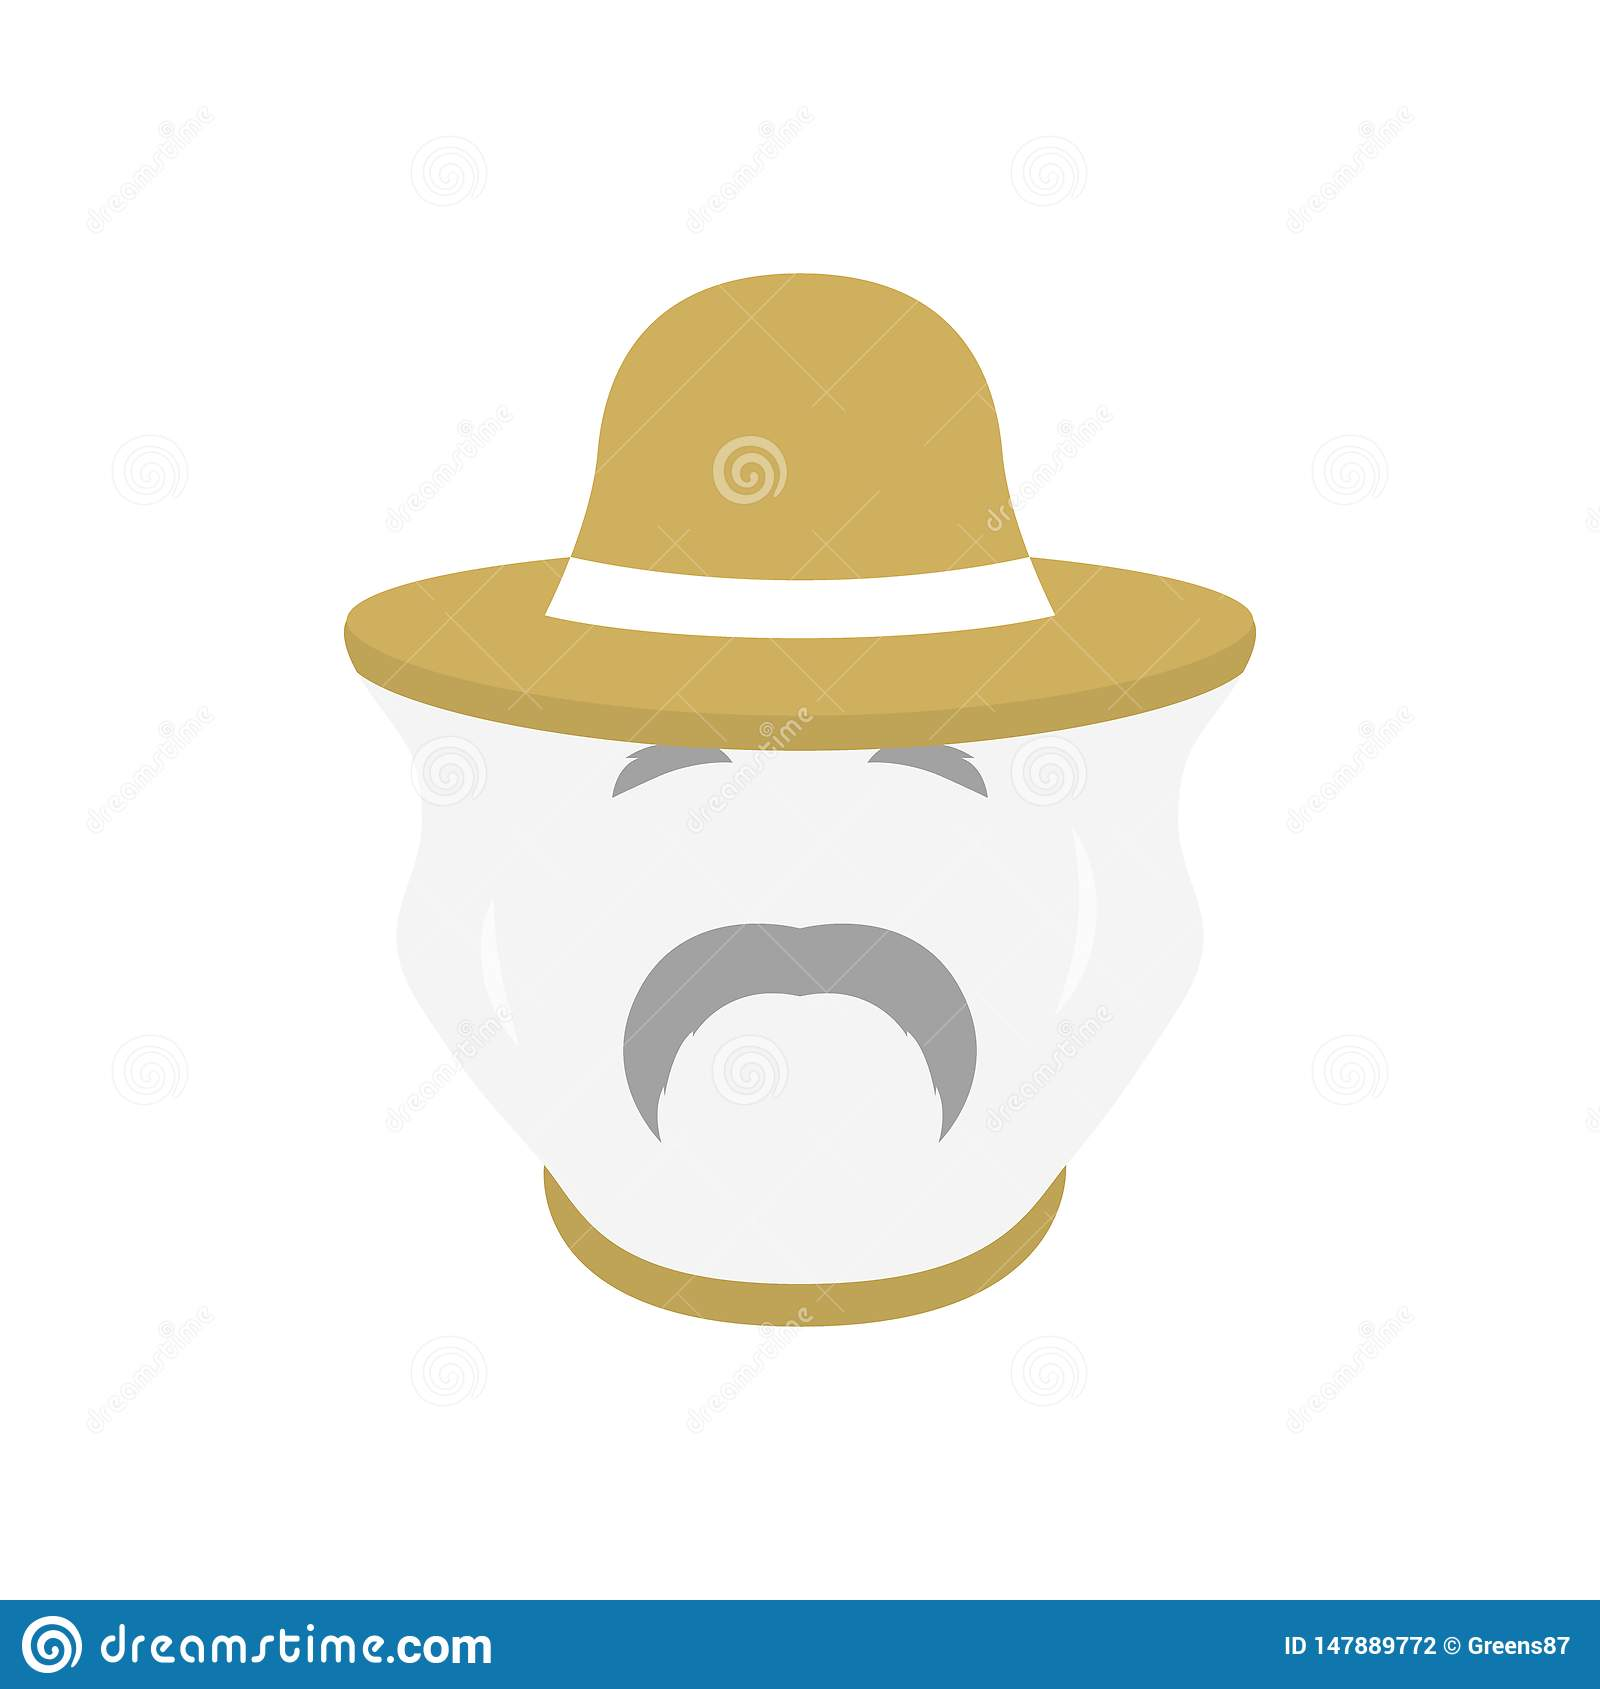 Beekeeper with protect hat icon. Men farmer face.